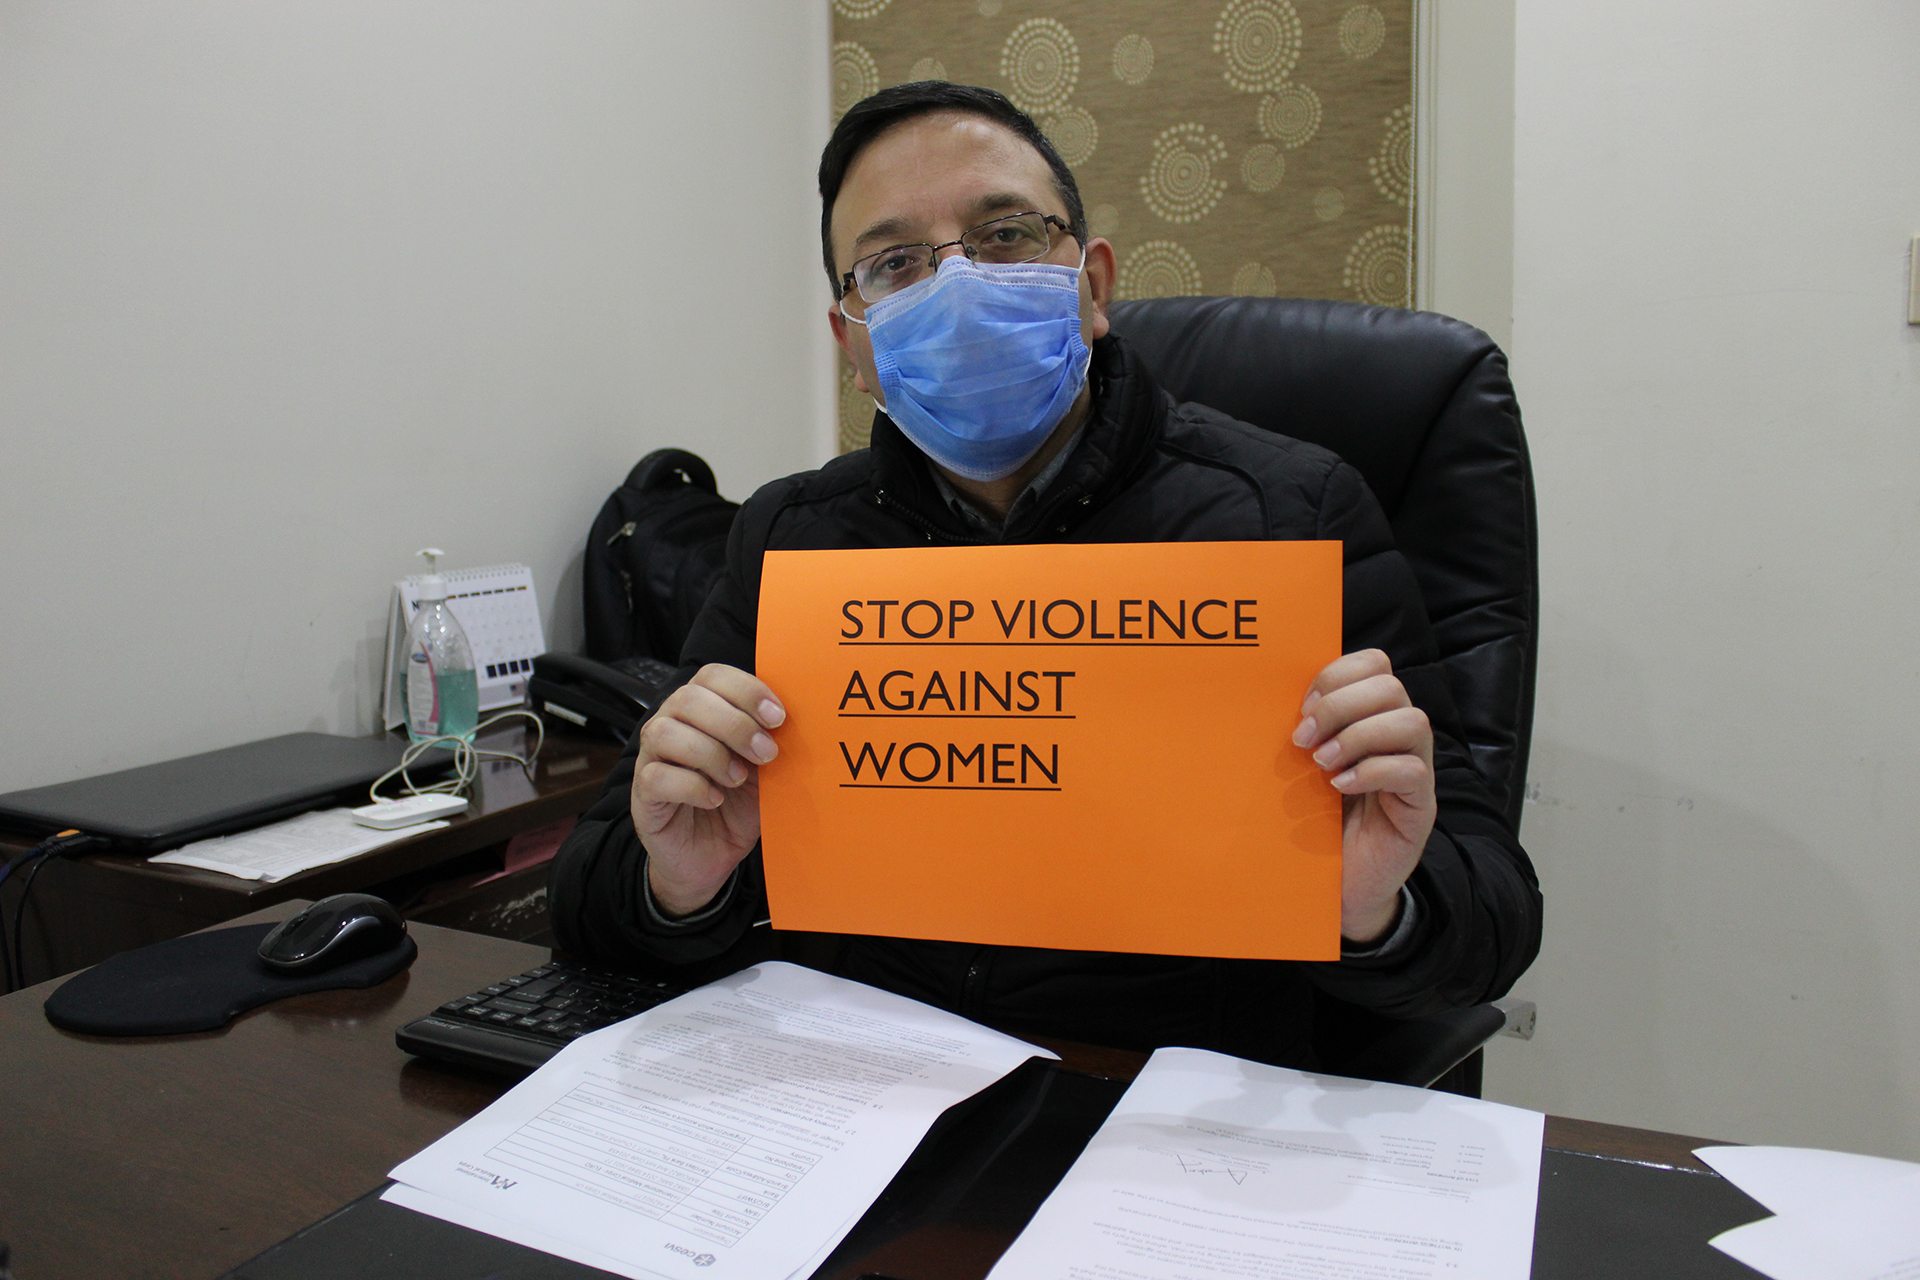 International Medical Corps' Country Director in Pakistan, Bakhtiar Ahmed, shows his support for the 16 Days campaign.